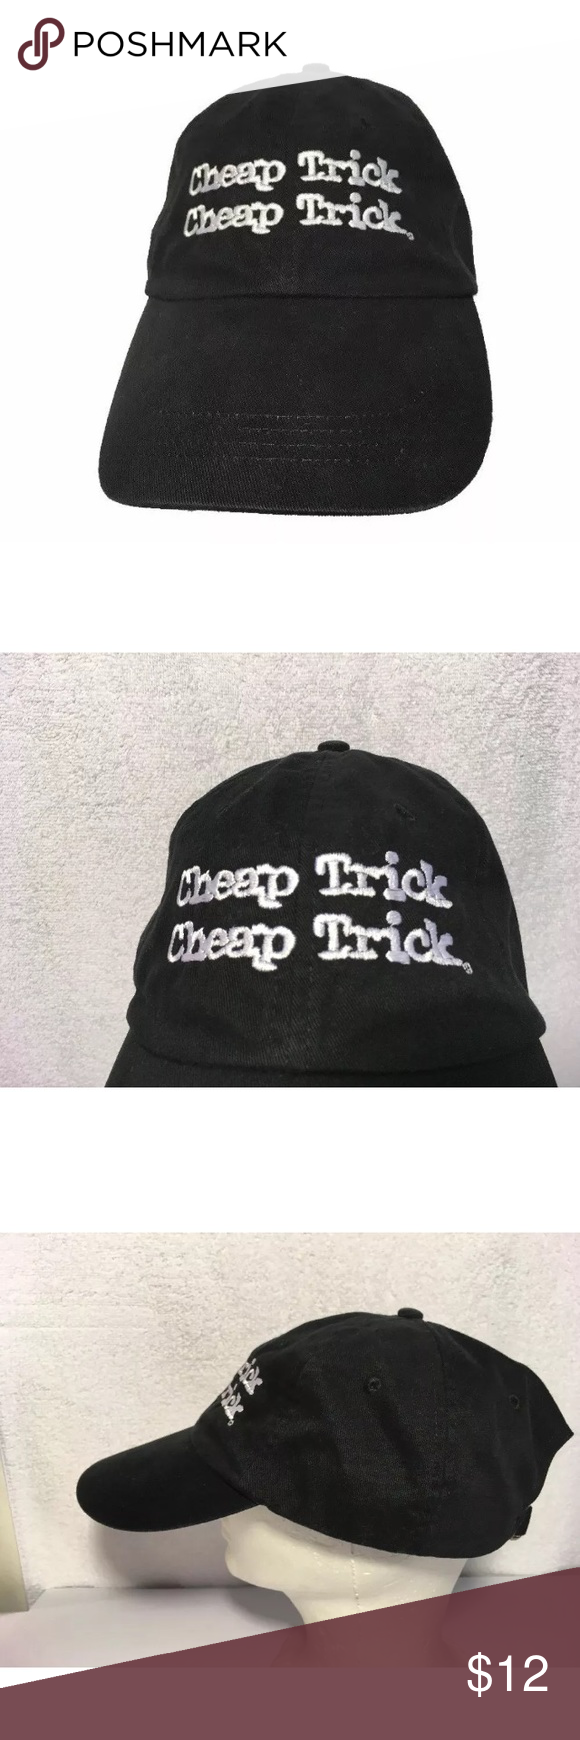 f20ed42acfd062 Cheap Trick Double Logo strap back Hat By Anvil Here's a very nice pre  owned Cheap